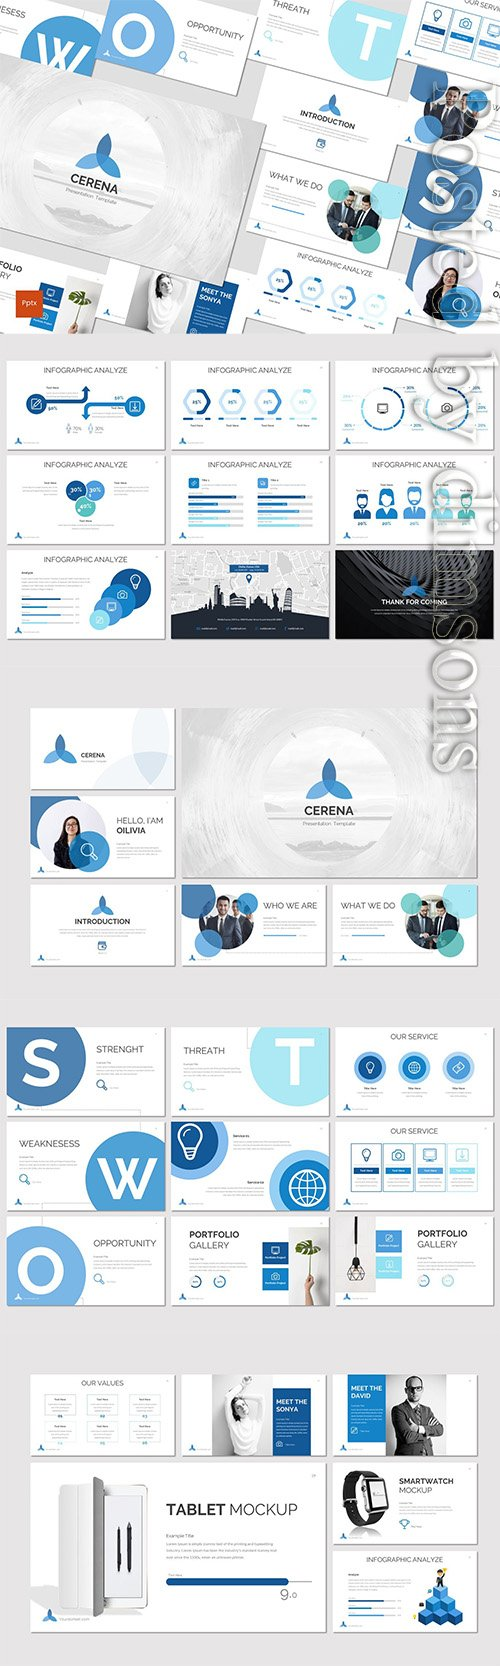 Cerena - Powerpoint, Keynote and Google Slides Templates